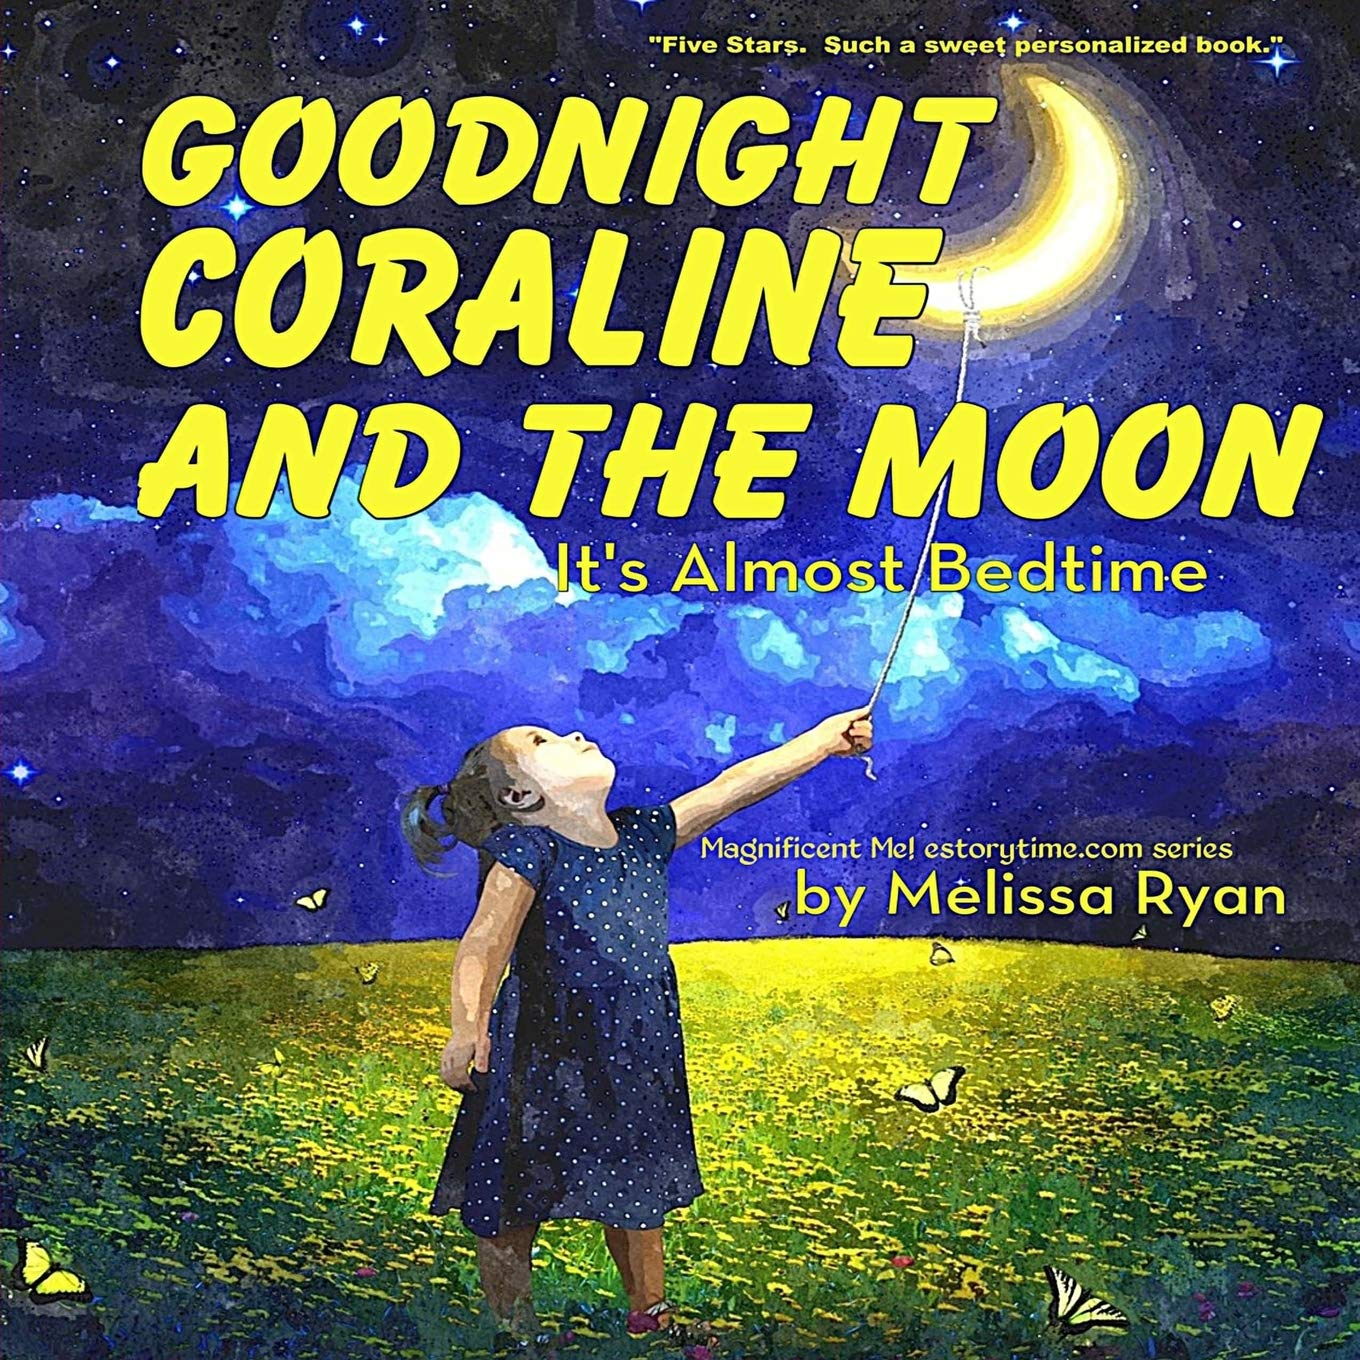 Goodnight Coraline And The Moon It S Almost Bedtime Personalized Children S Books Personalized Gifts And Bedtime Stories A Magnificent Me Estorytime Com Series Ryan Melissa 9781537767697 Amazon Com Books